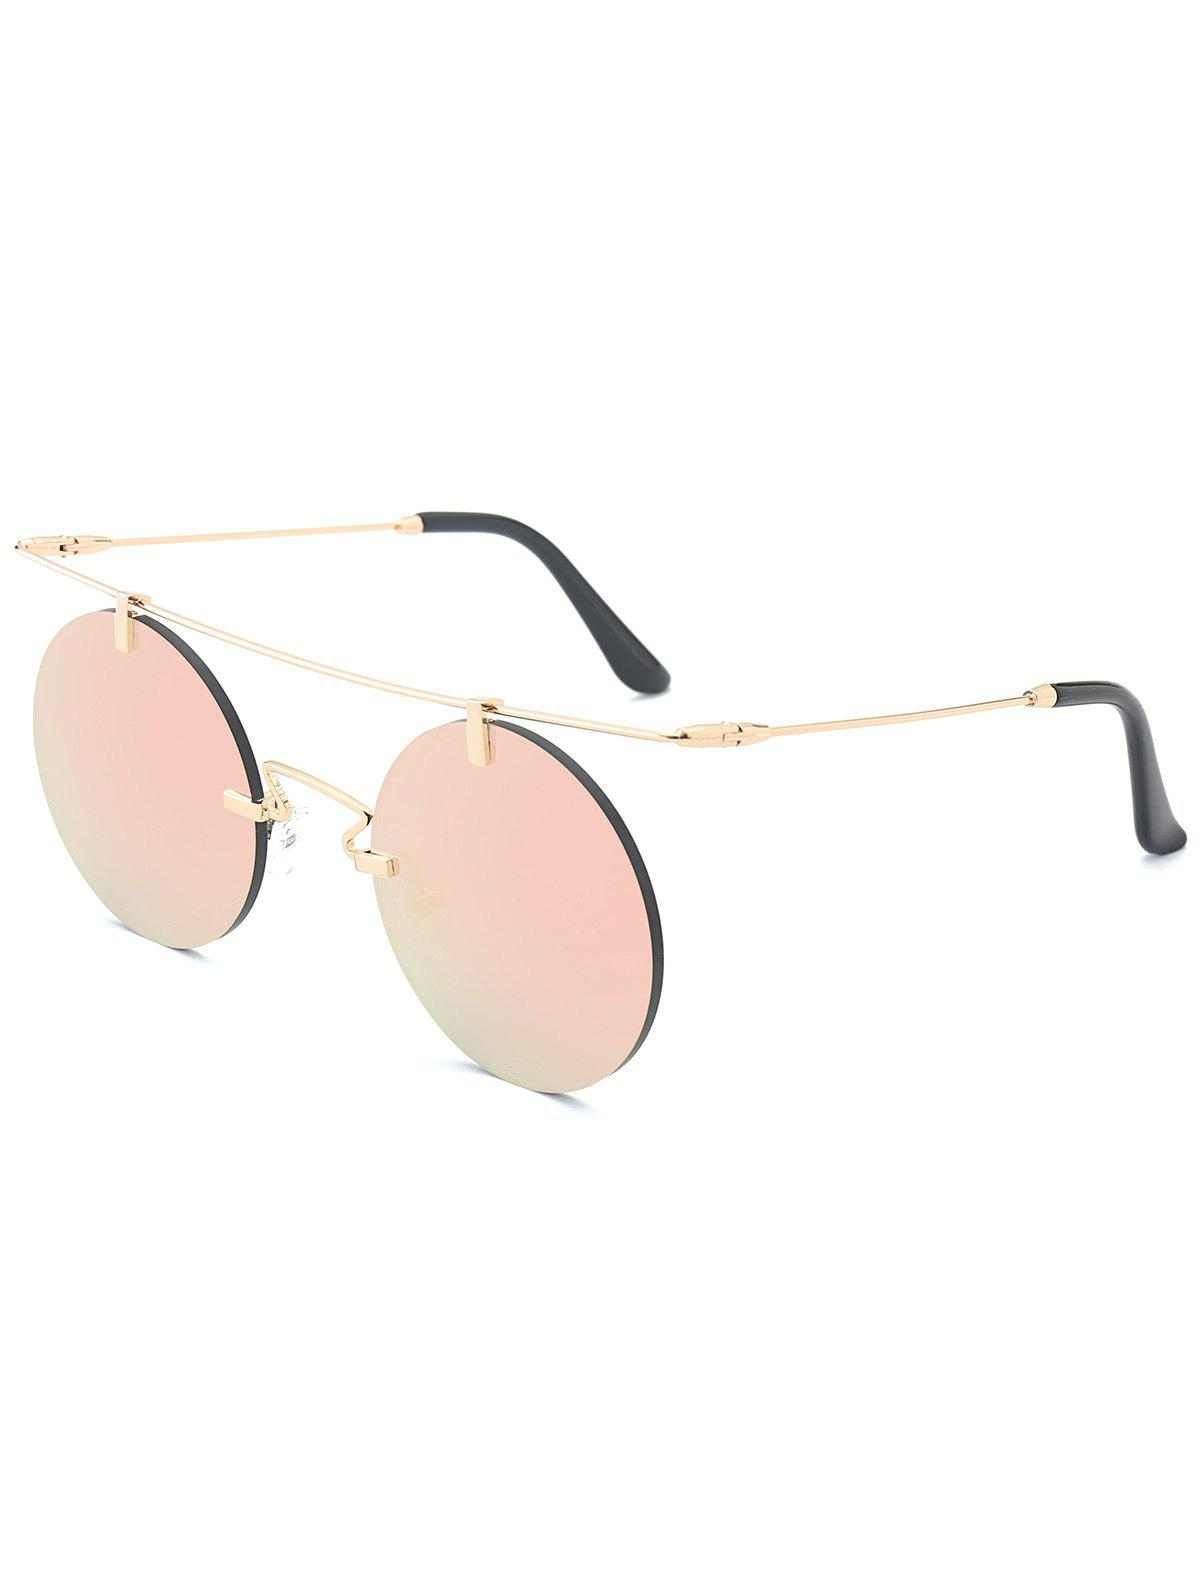 Outfits Mirror Straight Long Crossbar Round Rimless Sunglasses